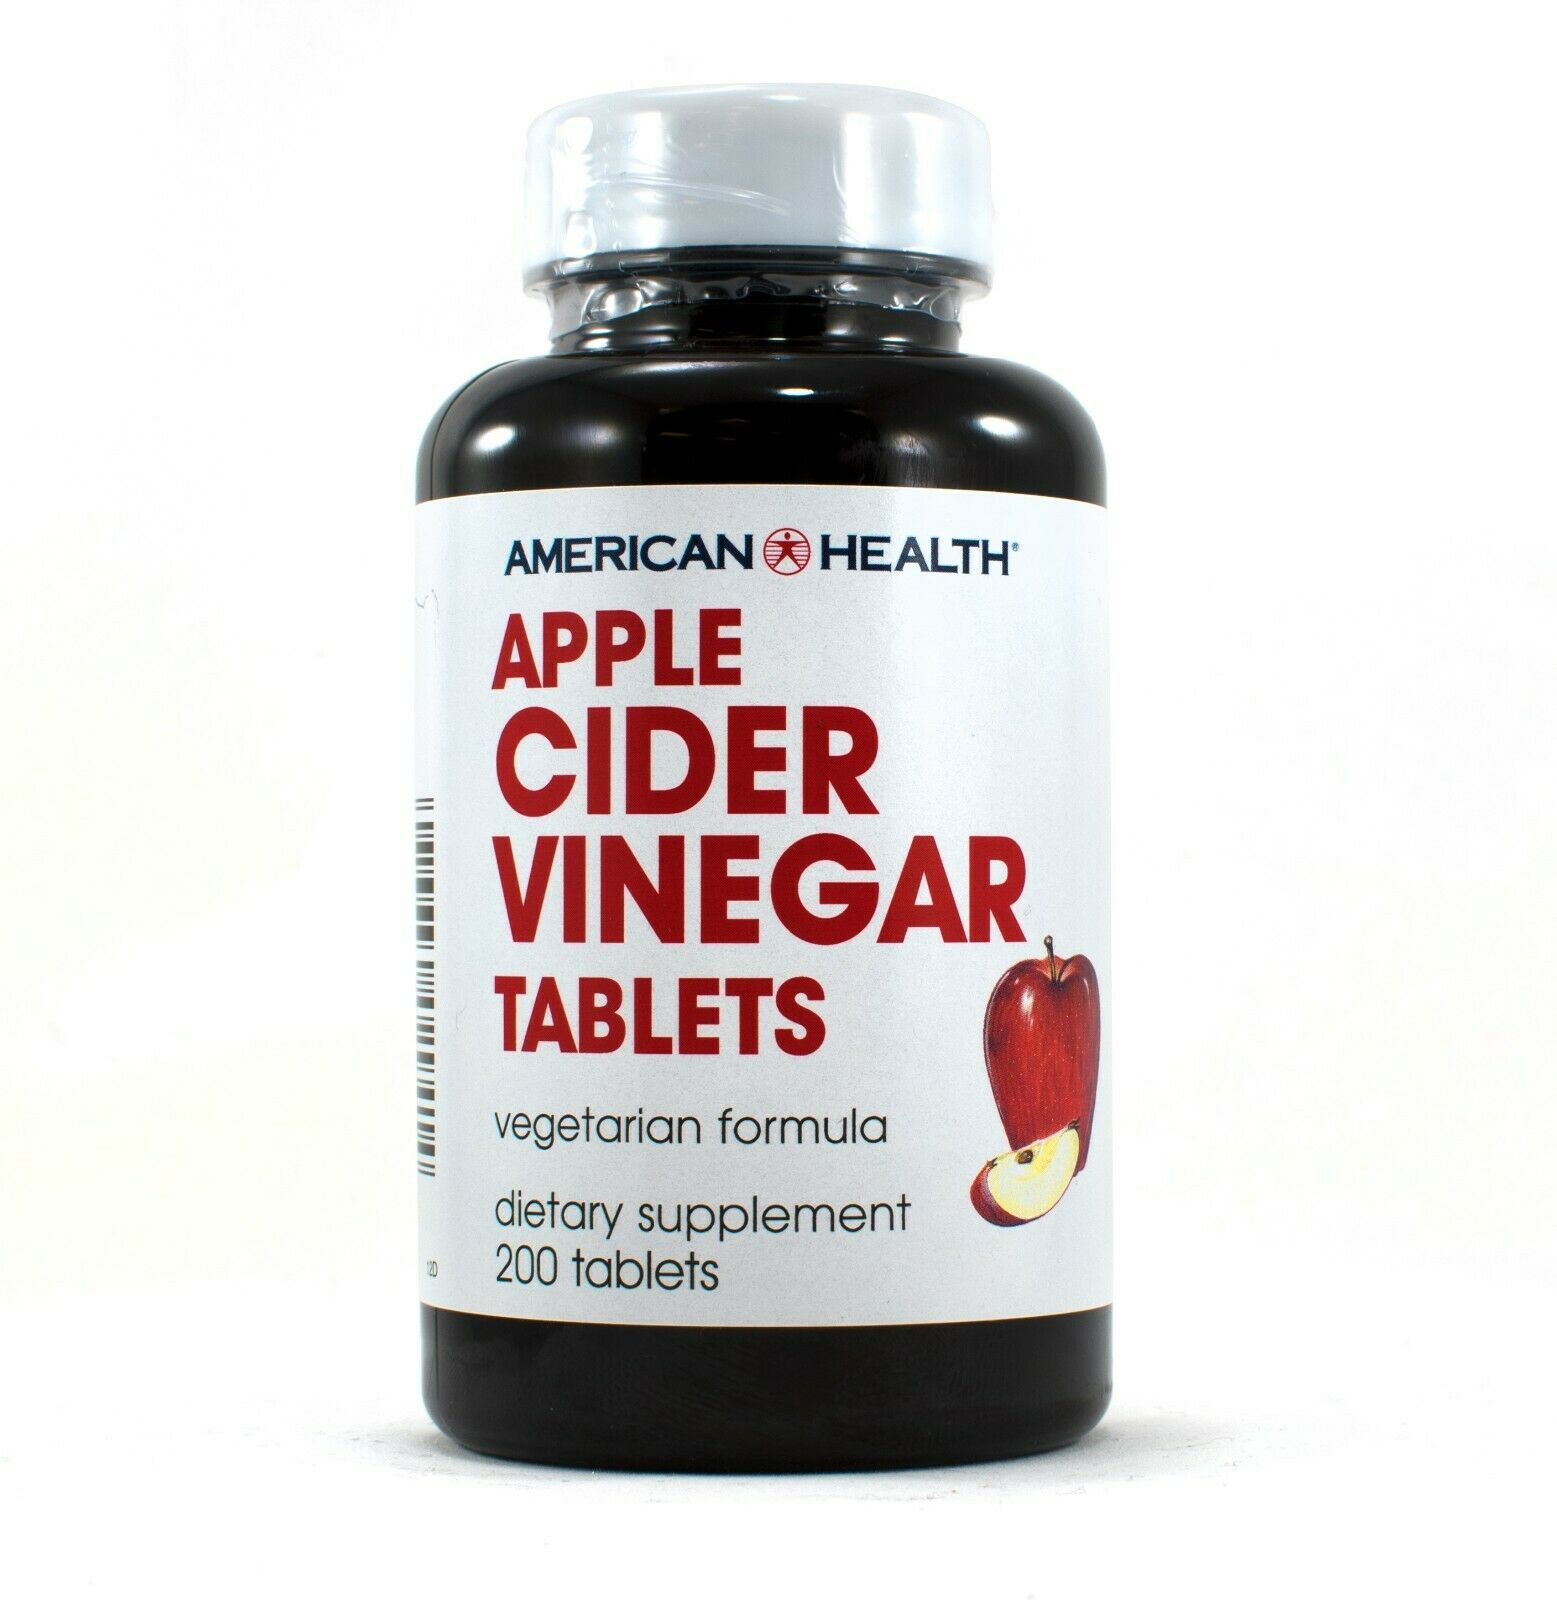 Most Powerful Apple Cider Vinegar Weight Loss Supplement from American Health